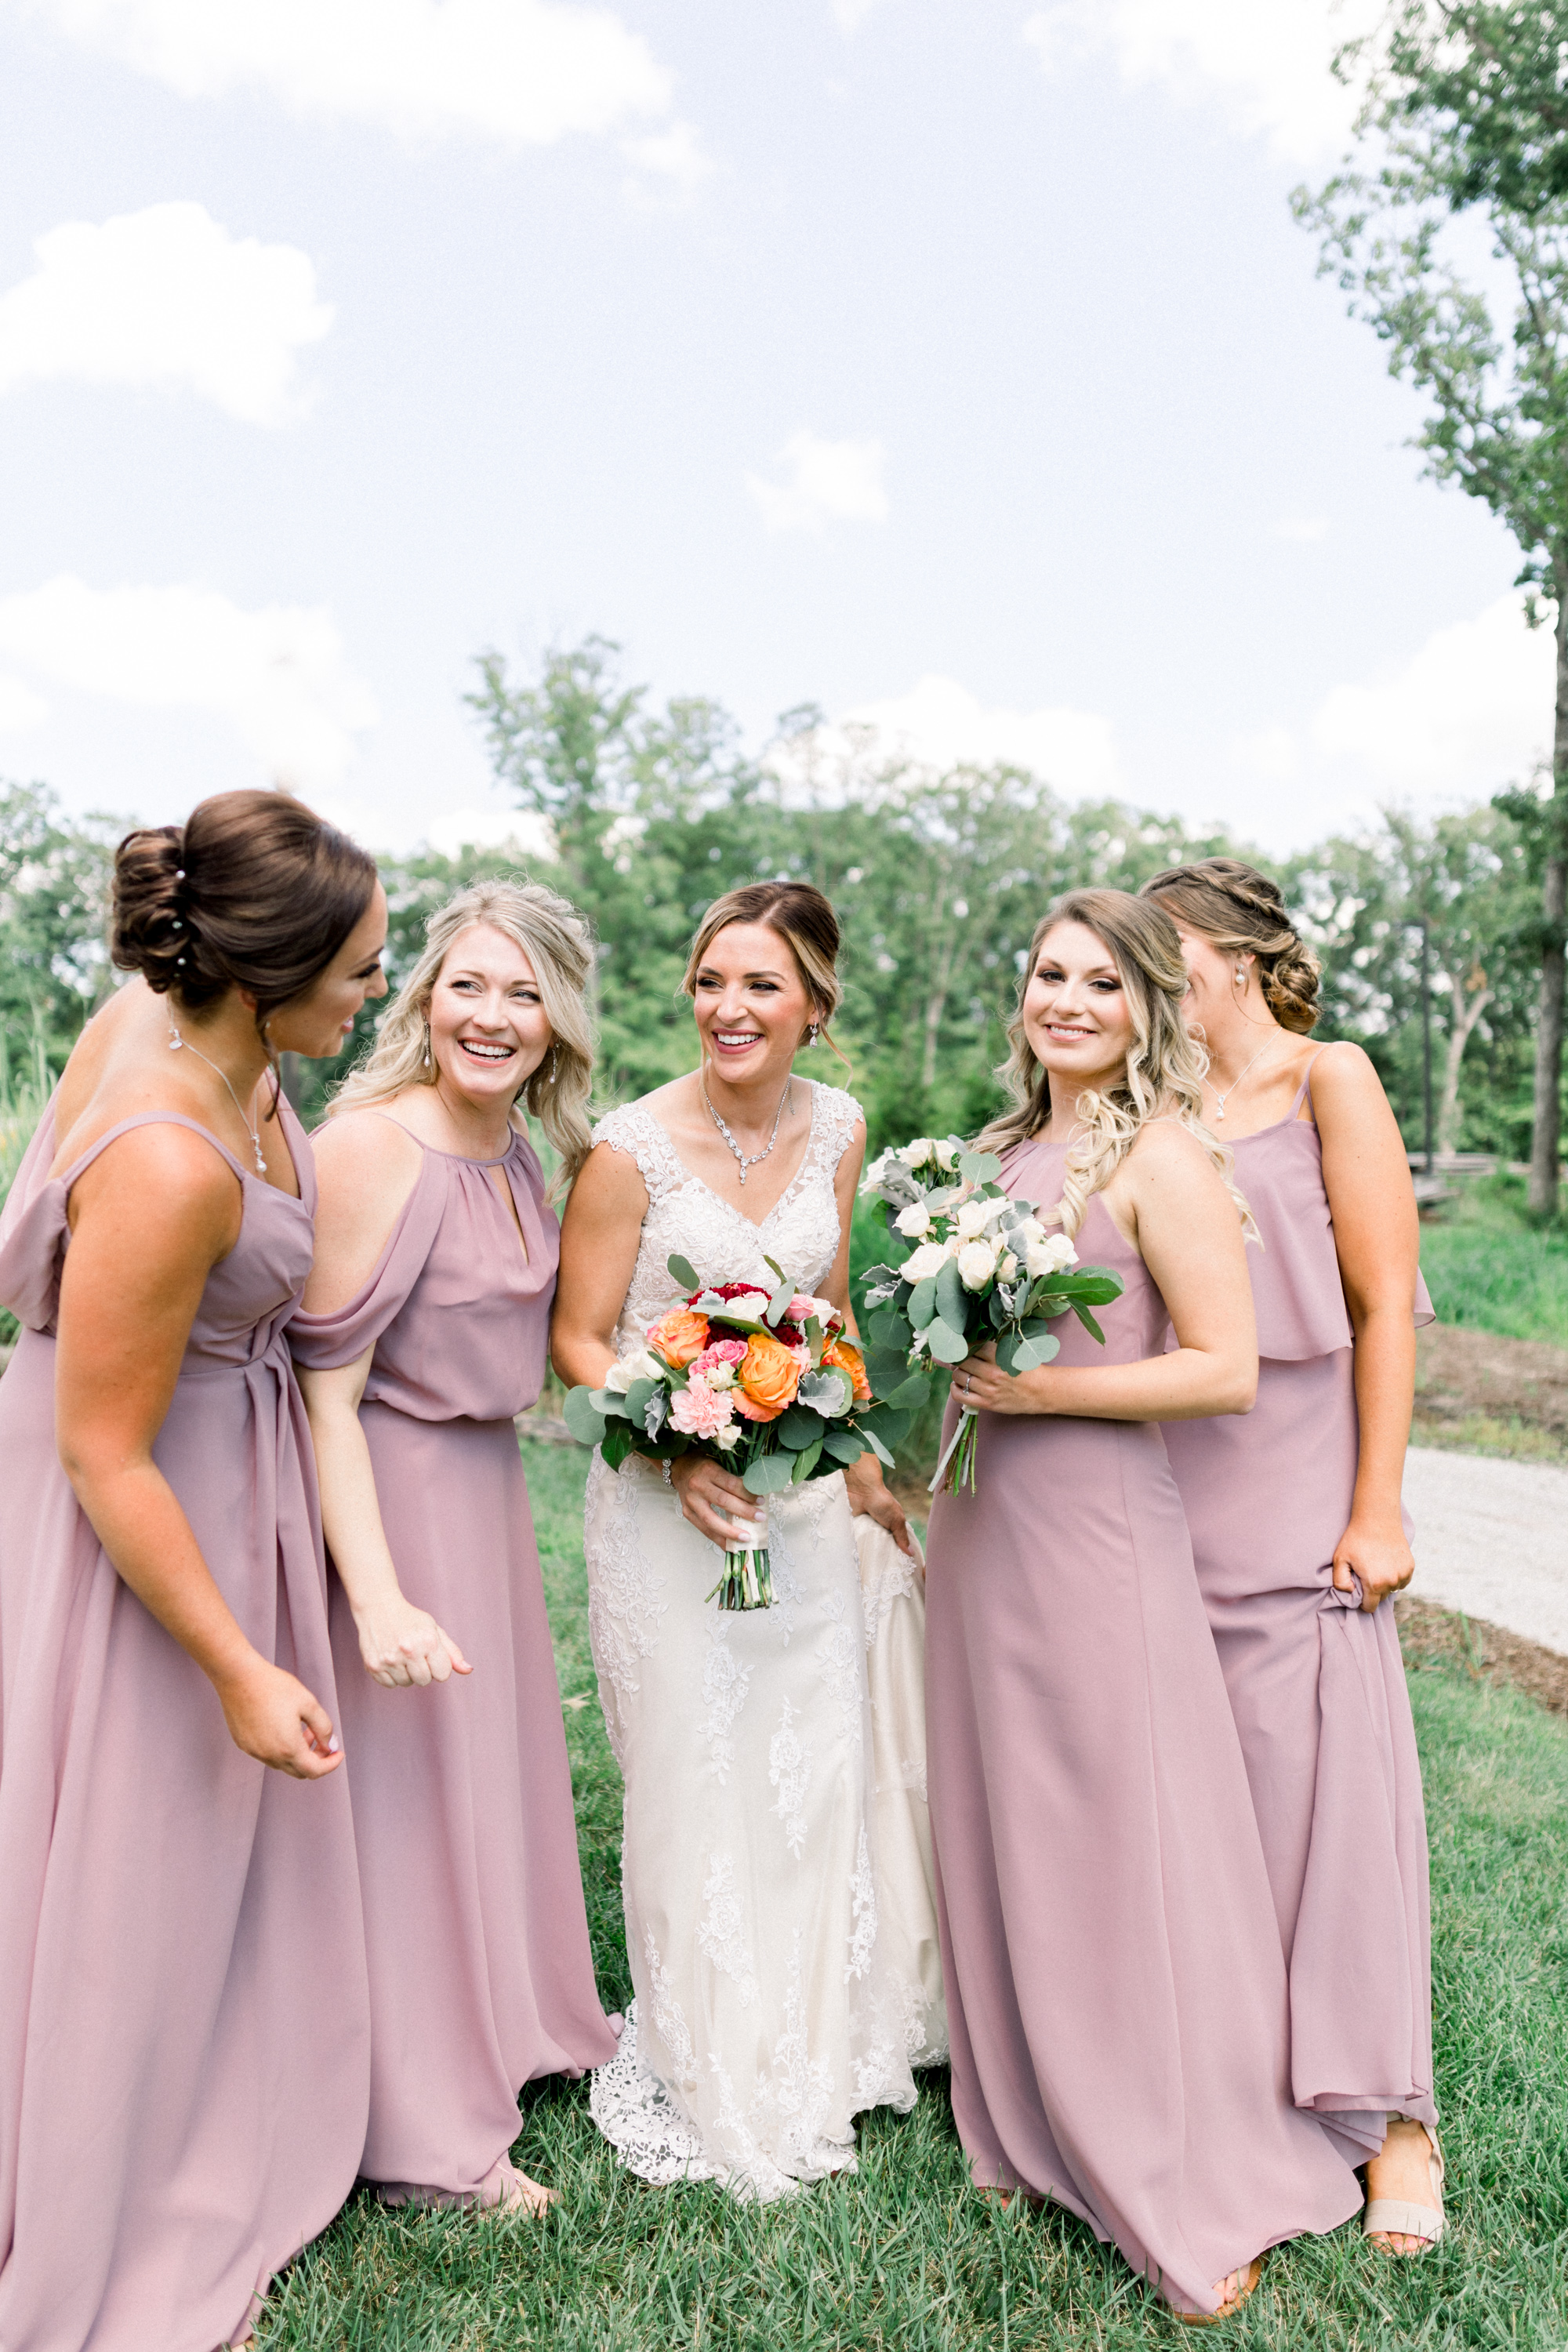 Lauren + Dallas 7-20-19 (406 of 1118).jpg